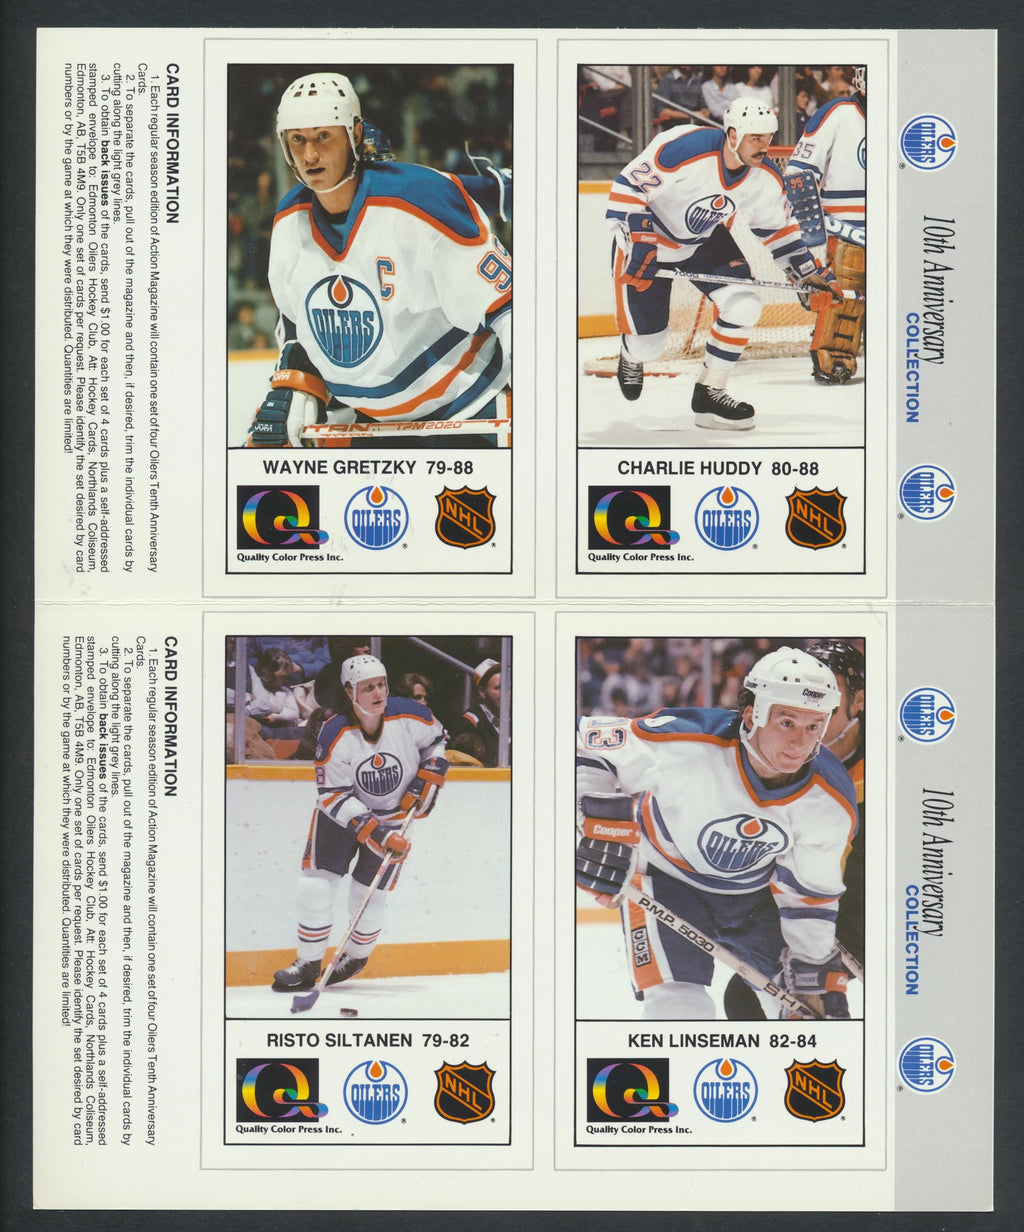 1988-89 Edmonton Oilers 10 Ann. Cards  Lot of 41 Pages (164 Cards)  Gretzky, Messier